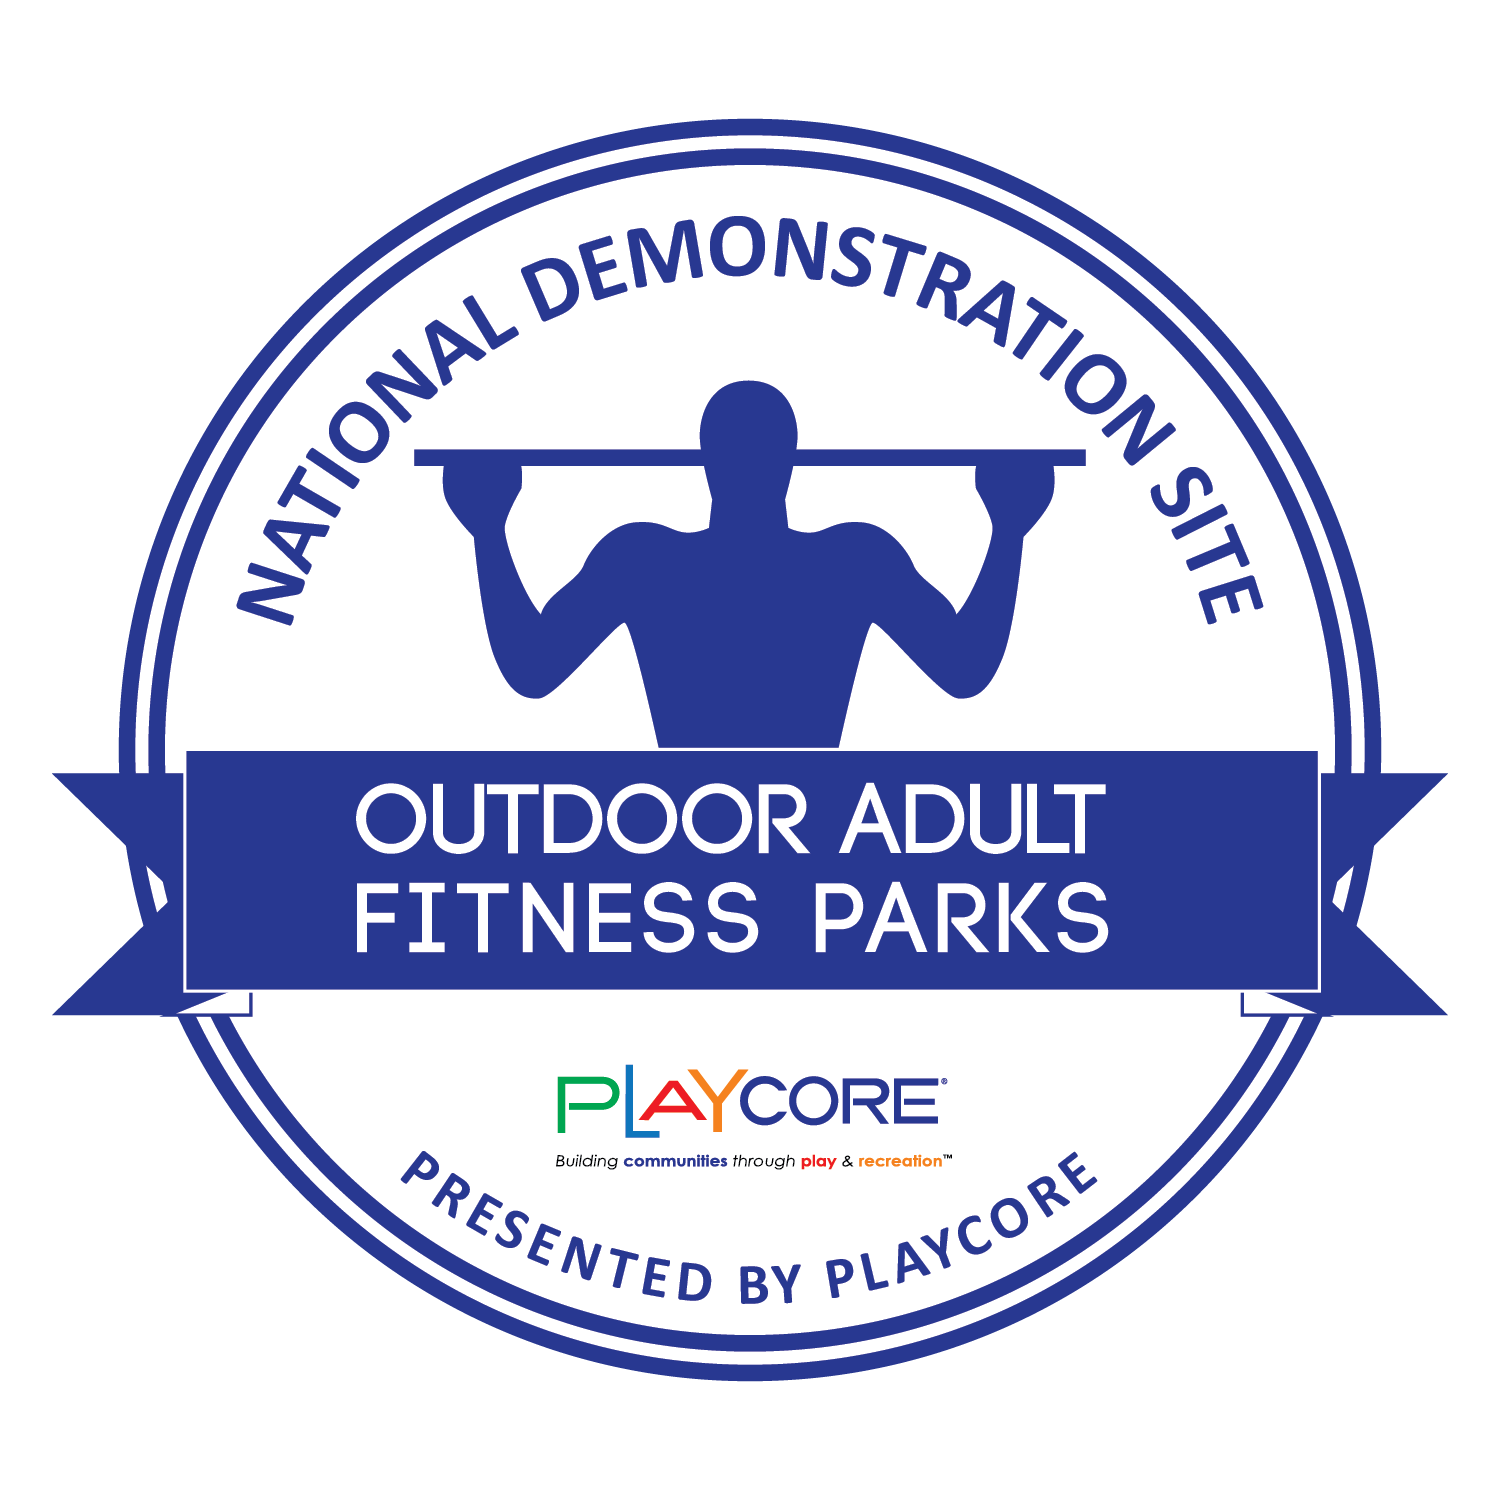 National Demonstration Site Seal - Outdoor Adult Fitness Parks